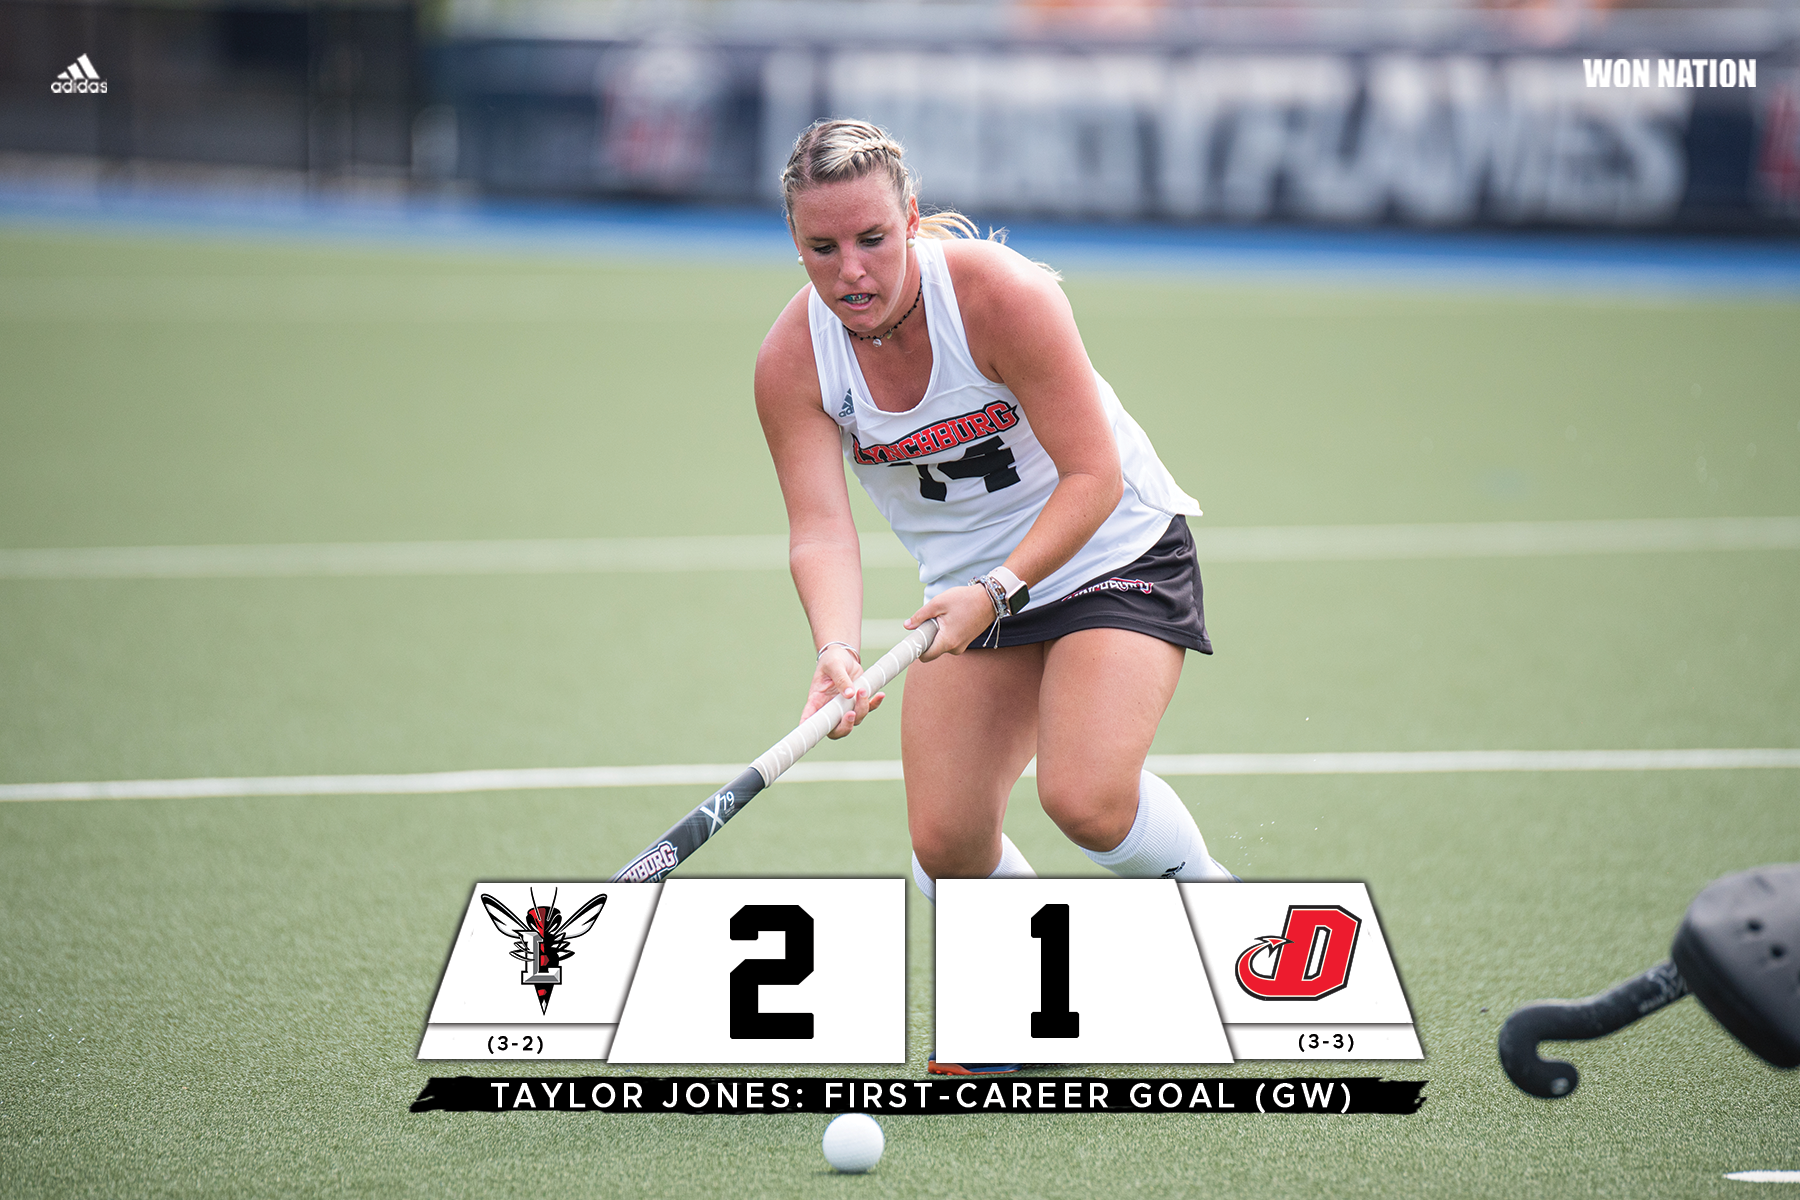 Taylor Jones scores her first career goal